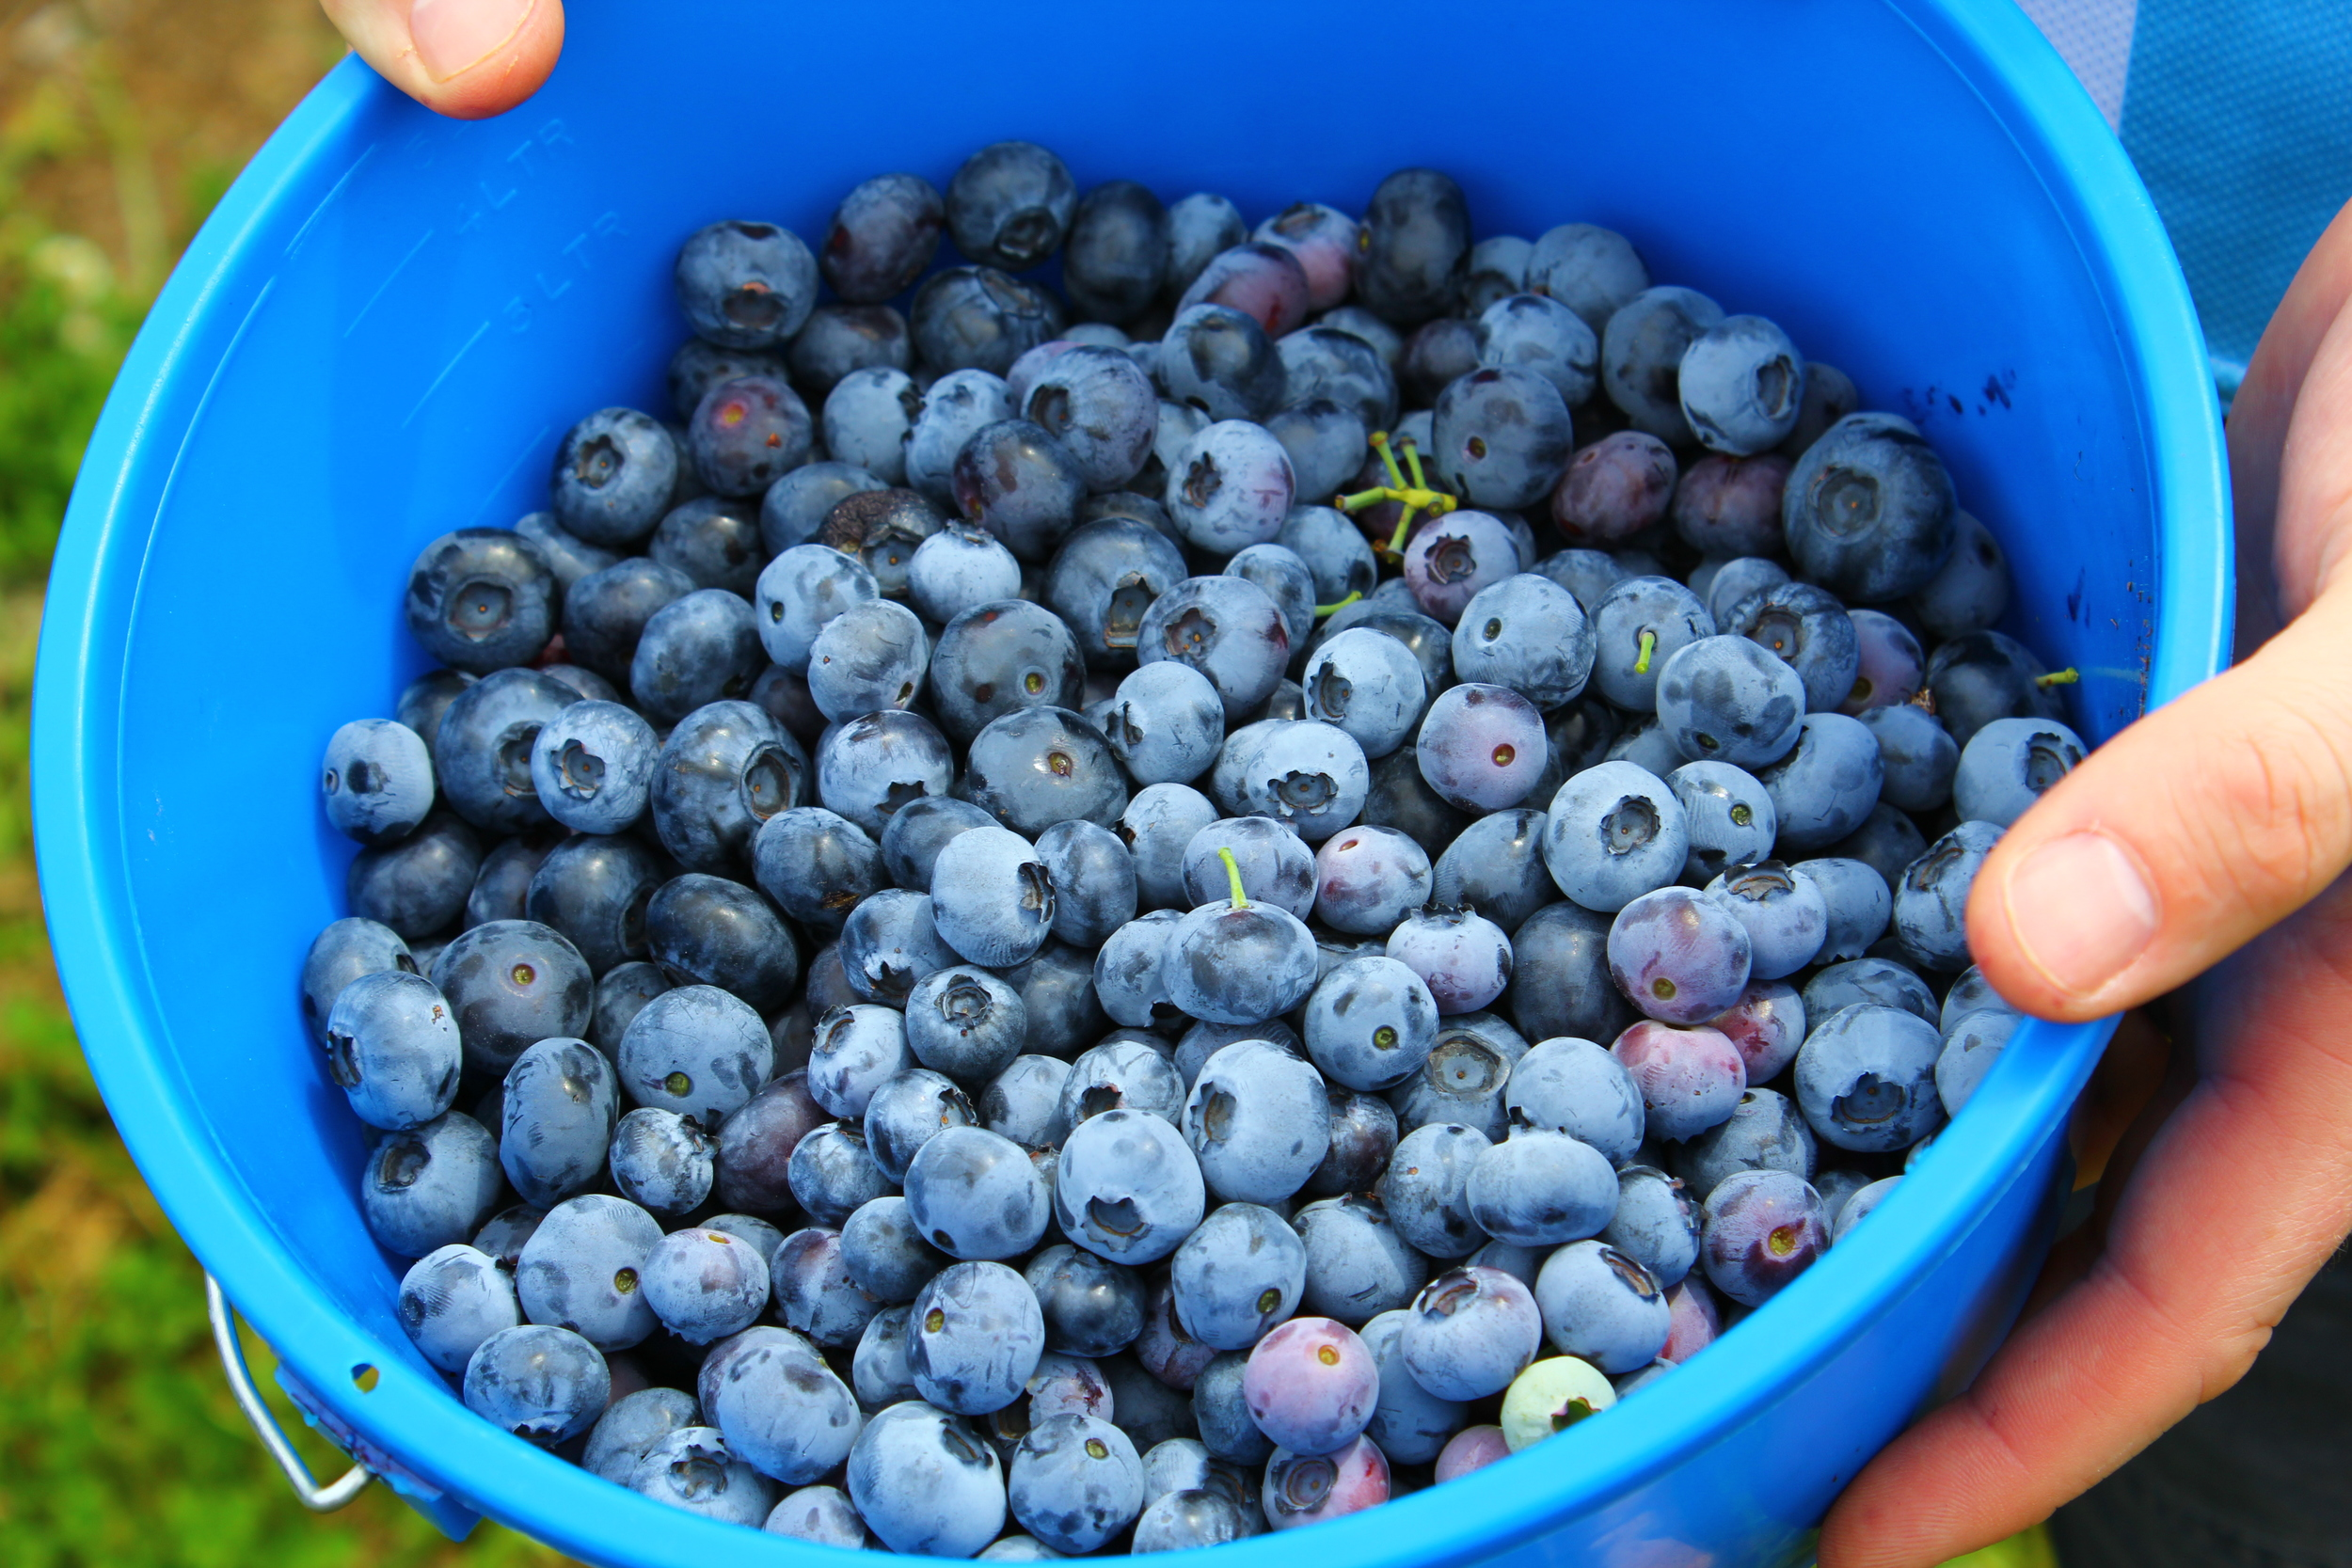 pounds and pounds of blueberries